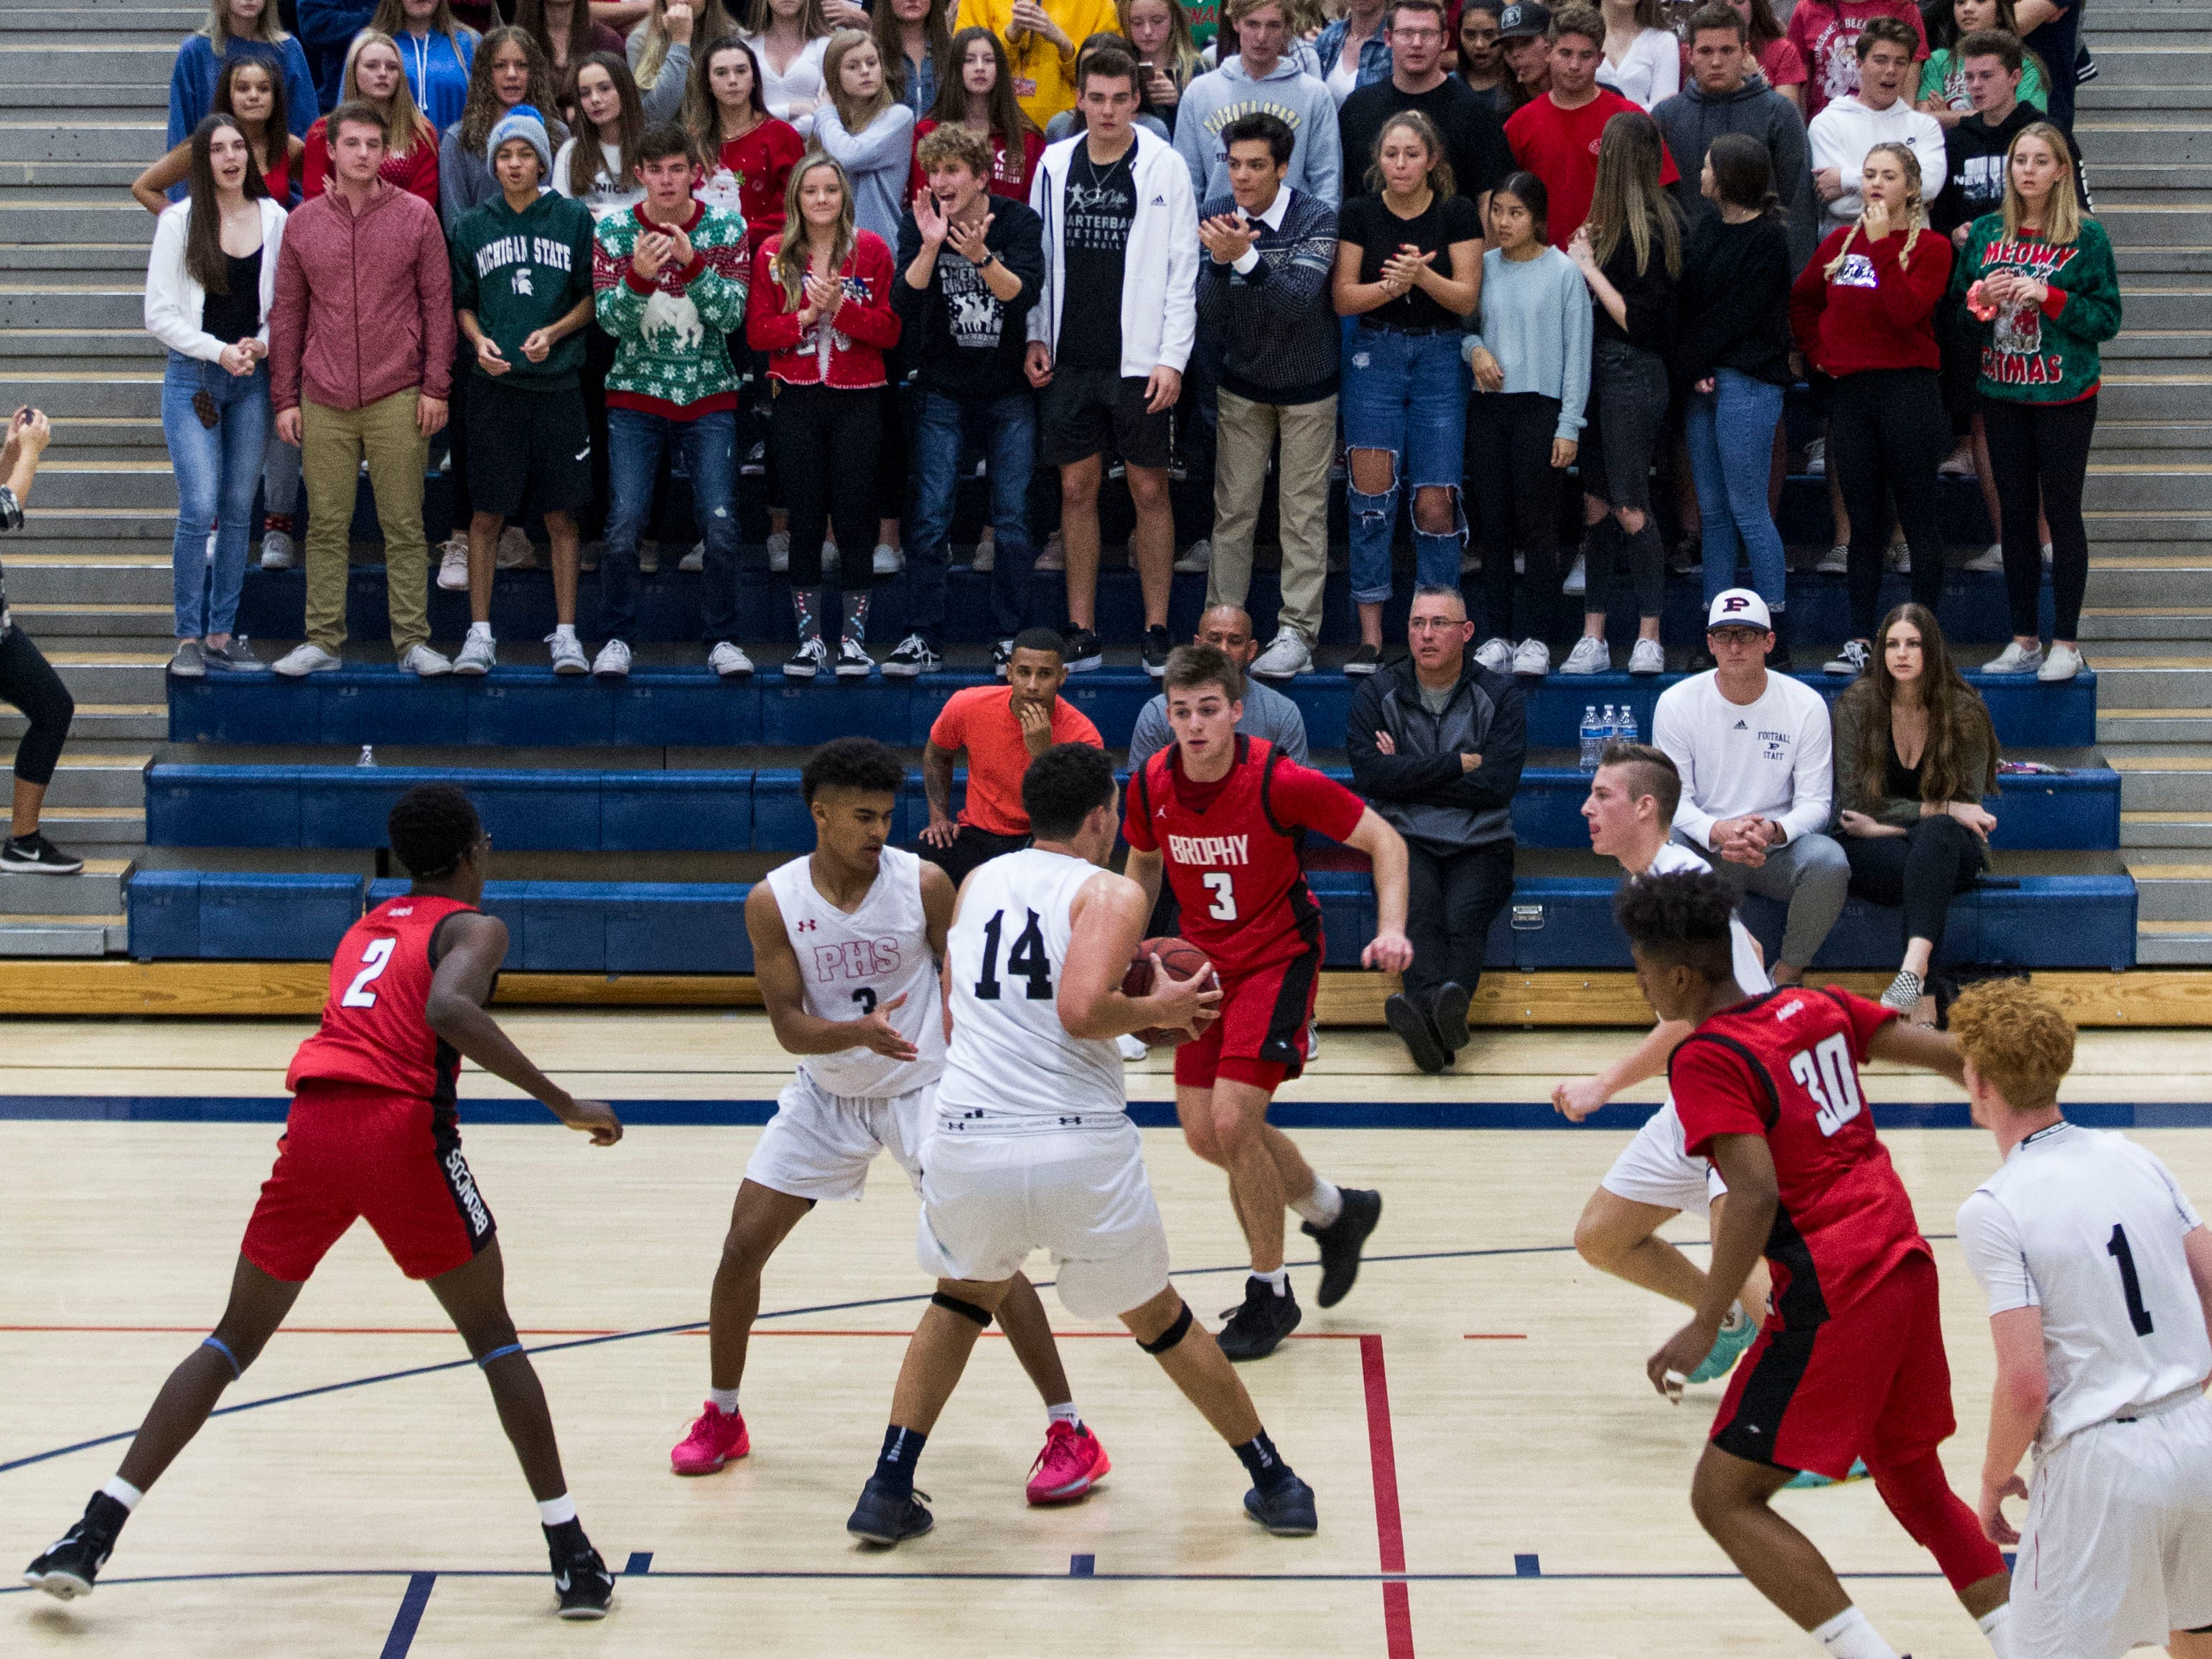 Pinnacle's student body section called the Crazies do their thing during the Brophy game in Phoenix, Friday, Dec. 21, 2018.